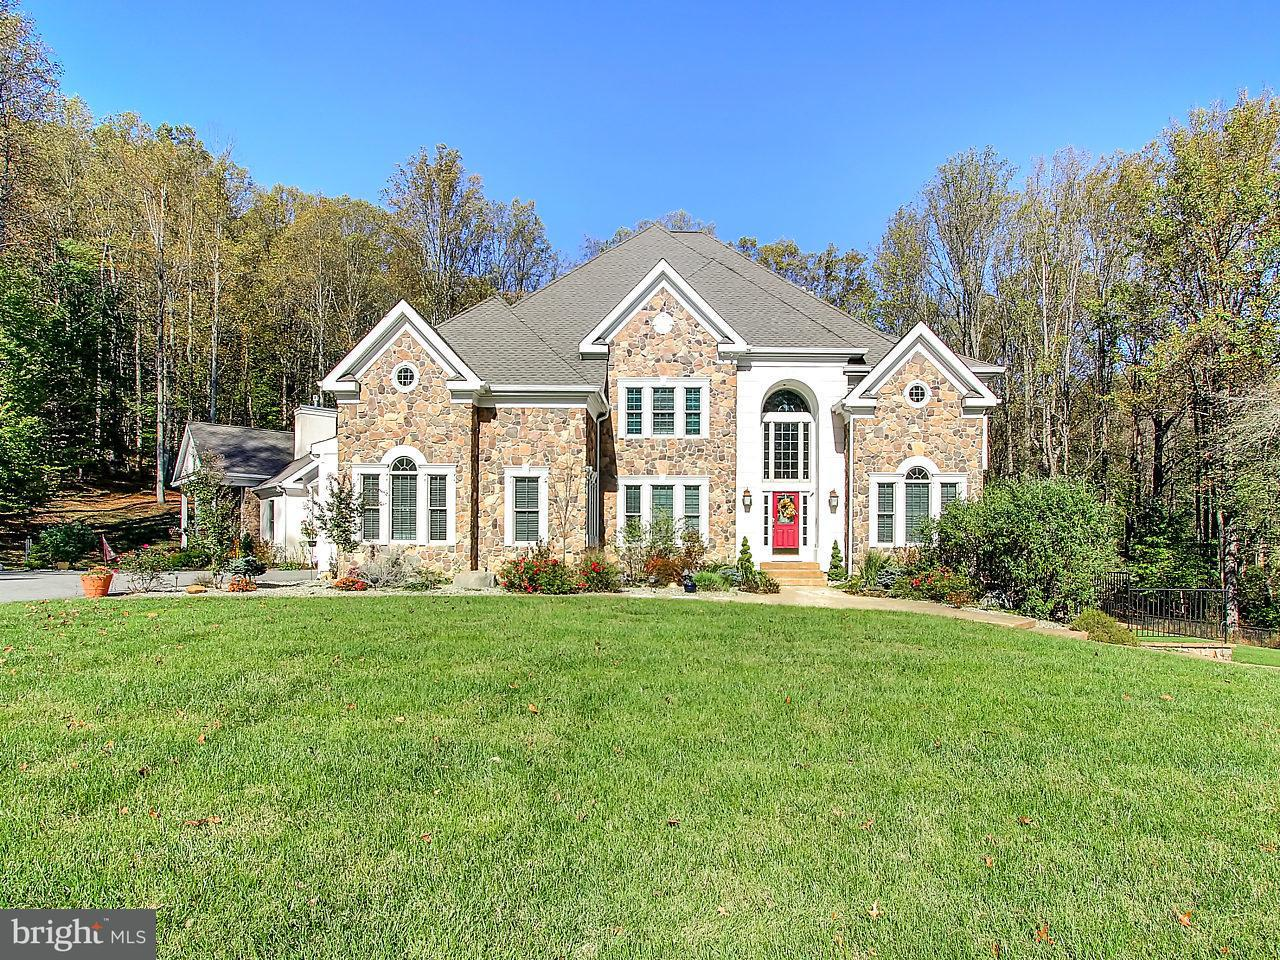 Casa Unifamiliar por un Venta en 11130 OLD CARRIAGE Road 11130 OLD CARRIAGE Road Glen Arm, Maryland 21057 Estados Unidos